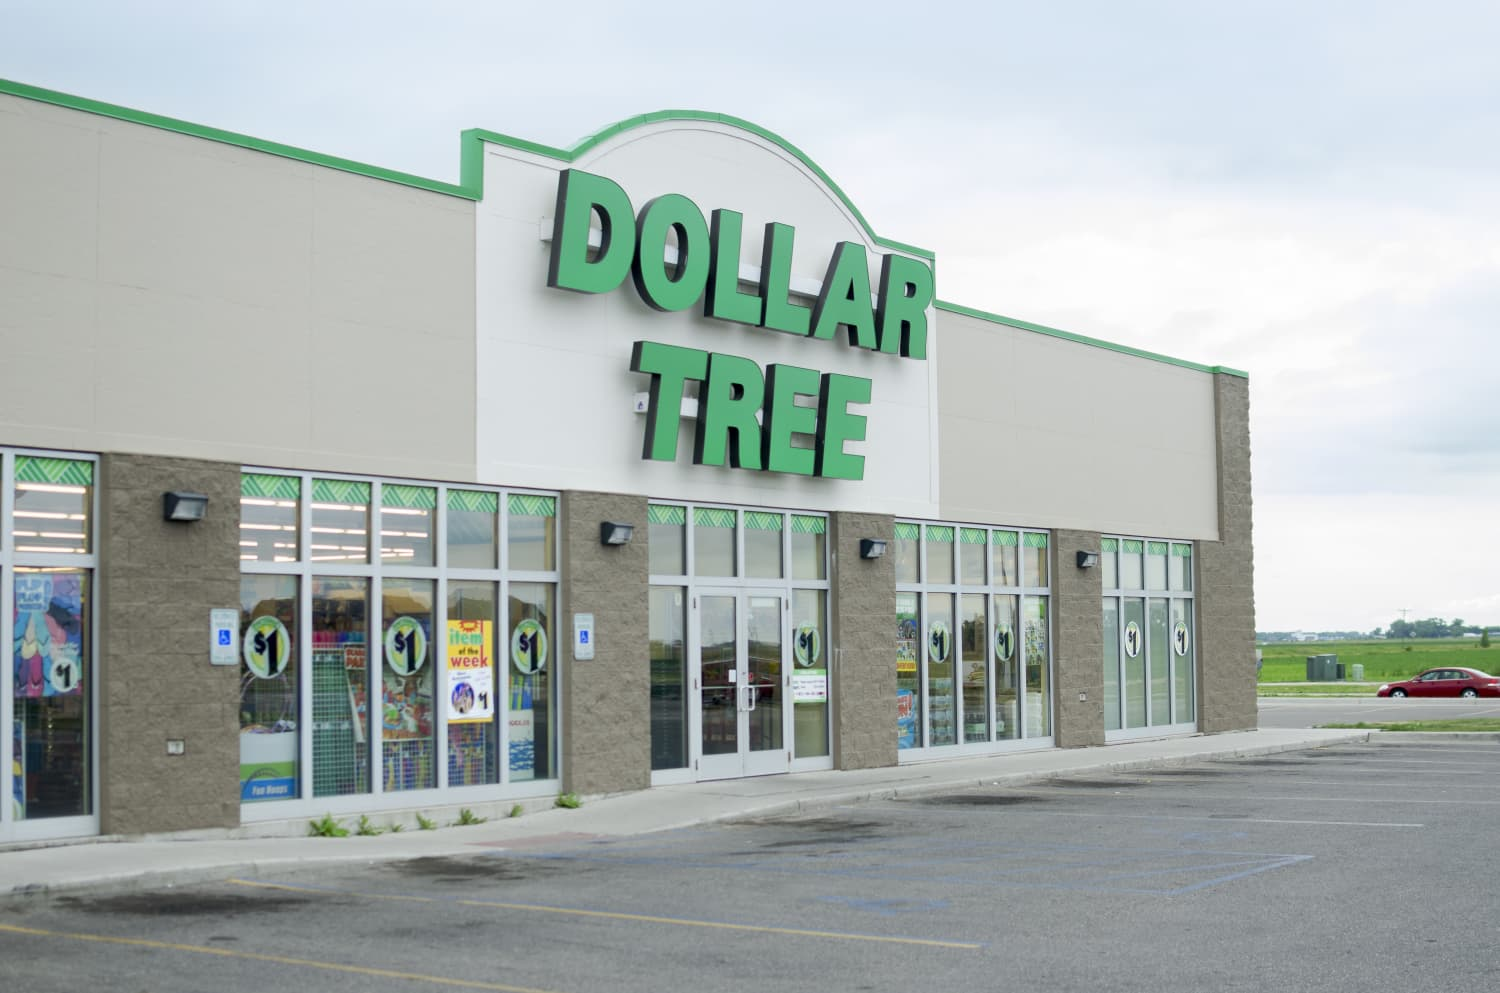 5 Things Every Homeowner Needs from The Dollar Store, According to Maintenance Experts